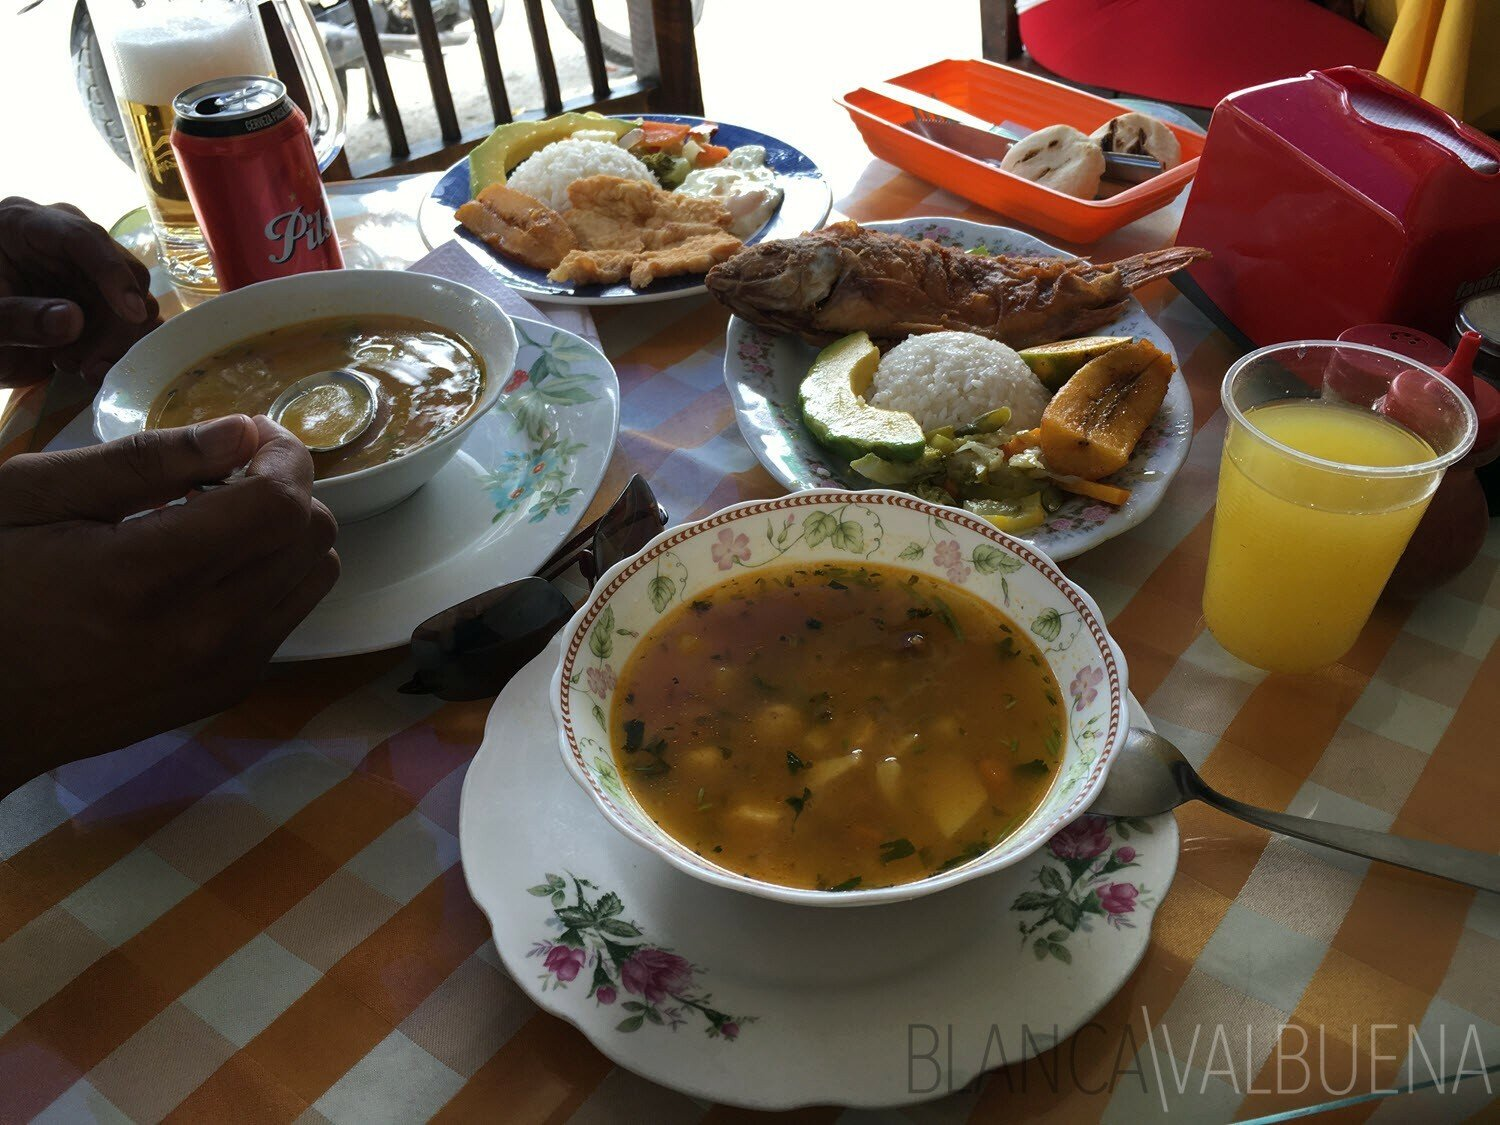 For typical Colombian food, head to El Sazon de Martica in La Magnolia in Envigado